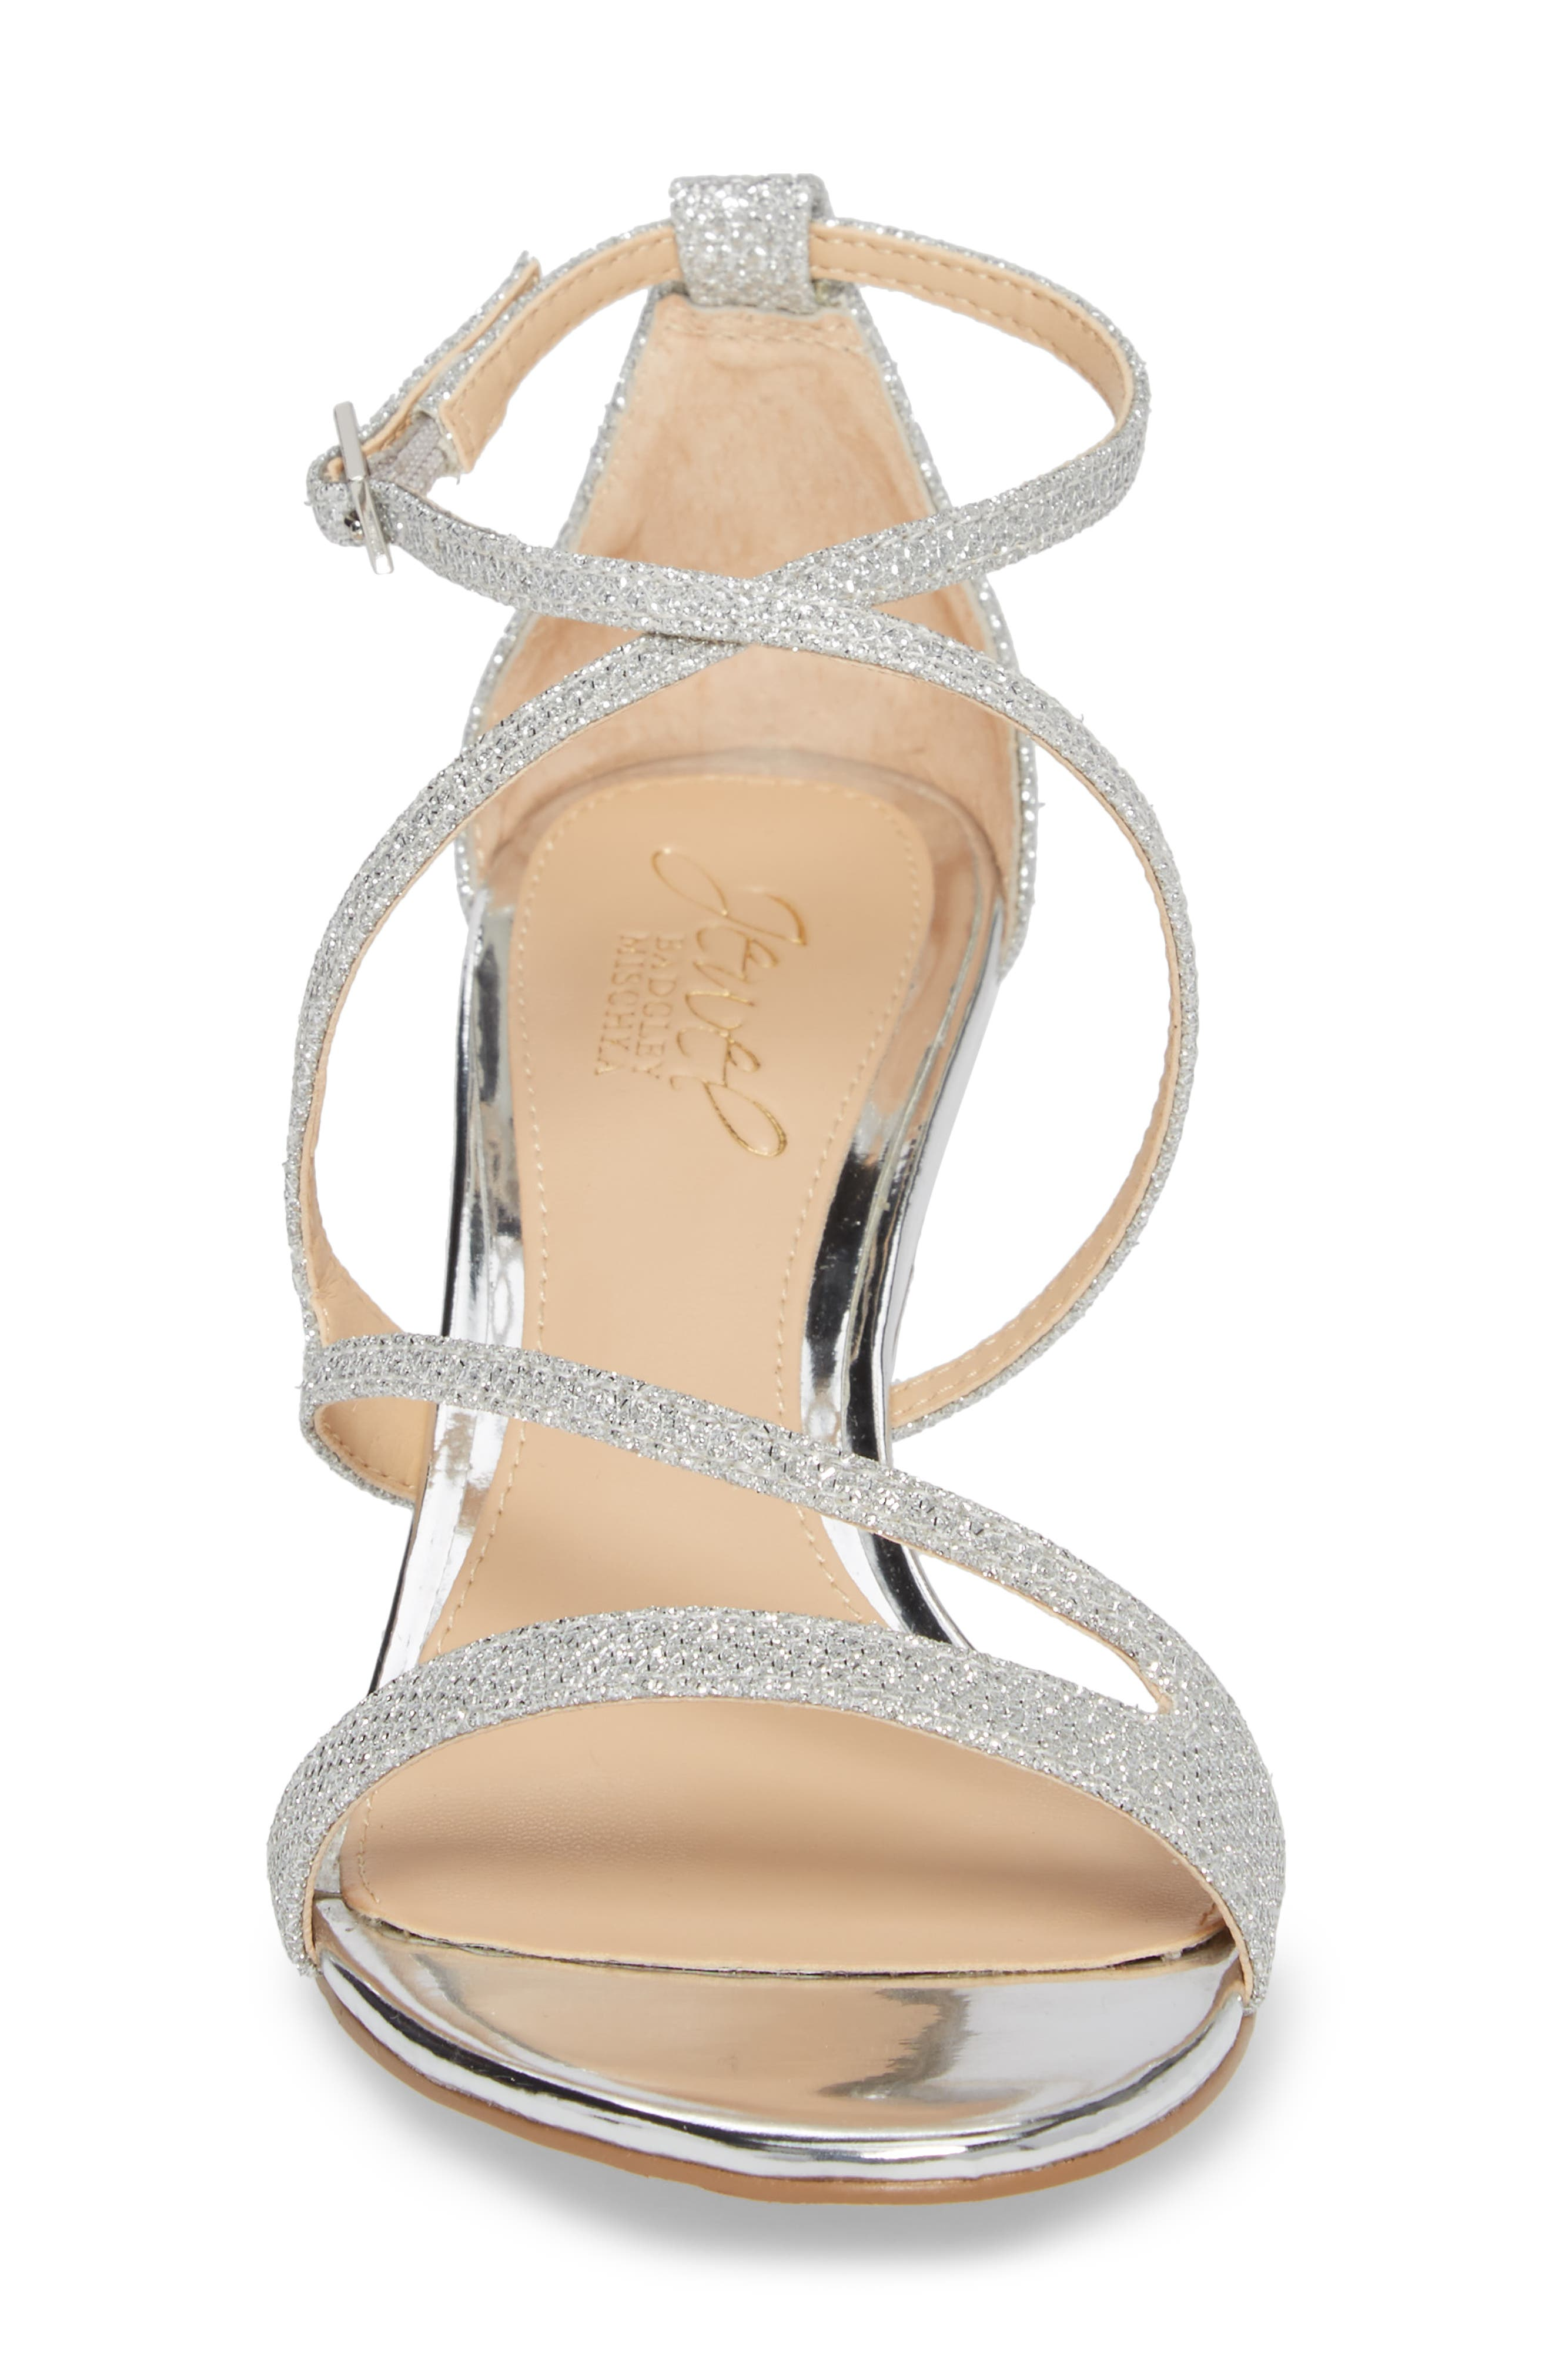 Gal Glitter Kitten Heel Sandal,                             Alternate thumbnail 4, color,                             SILVER GLITTER FABRIC